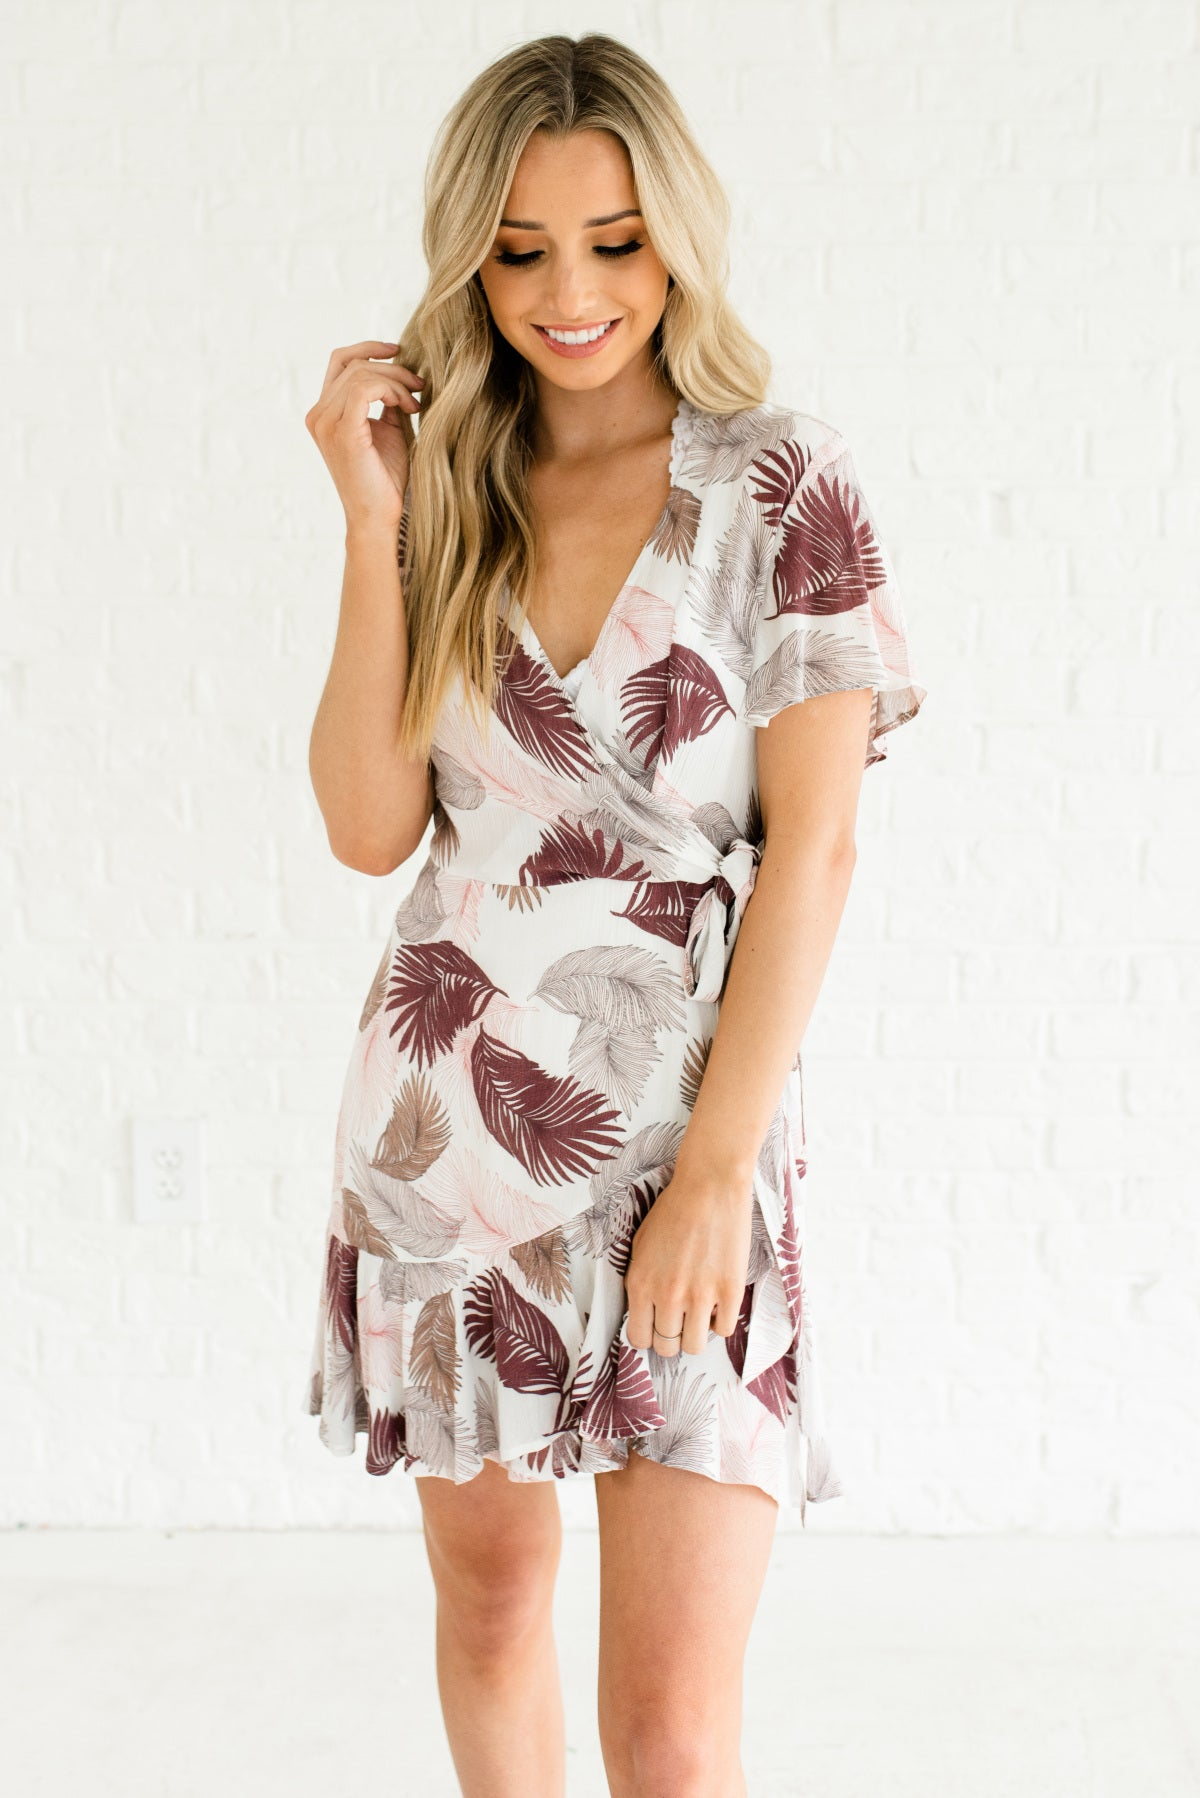 Purple and White Feather Patterned Faux Wrap Boutique Dresses for Women